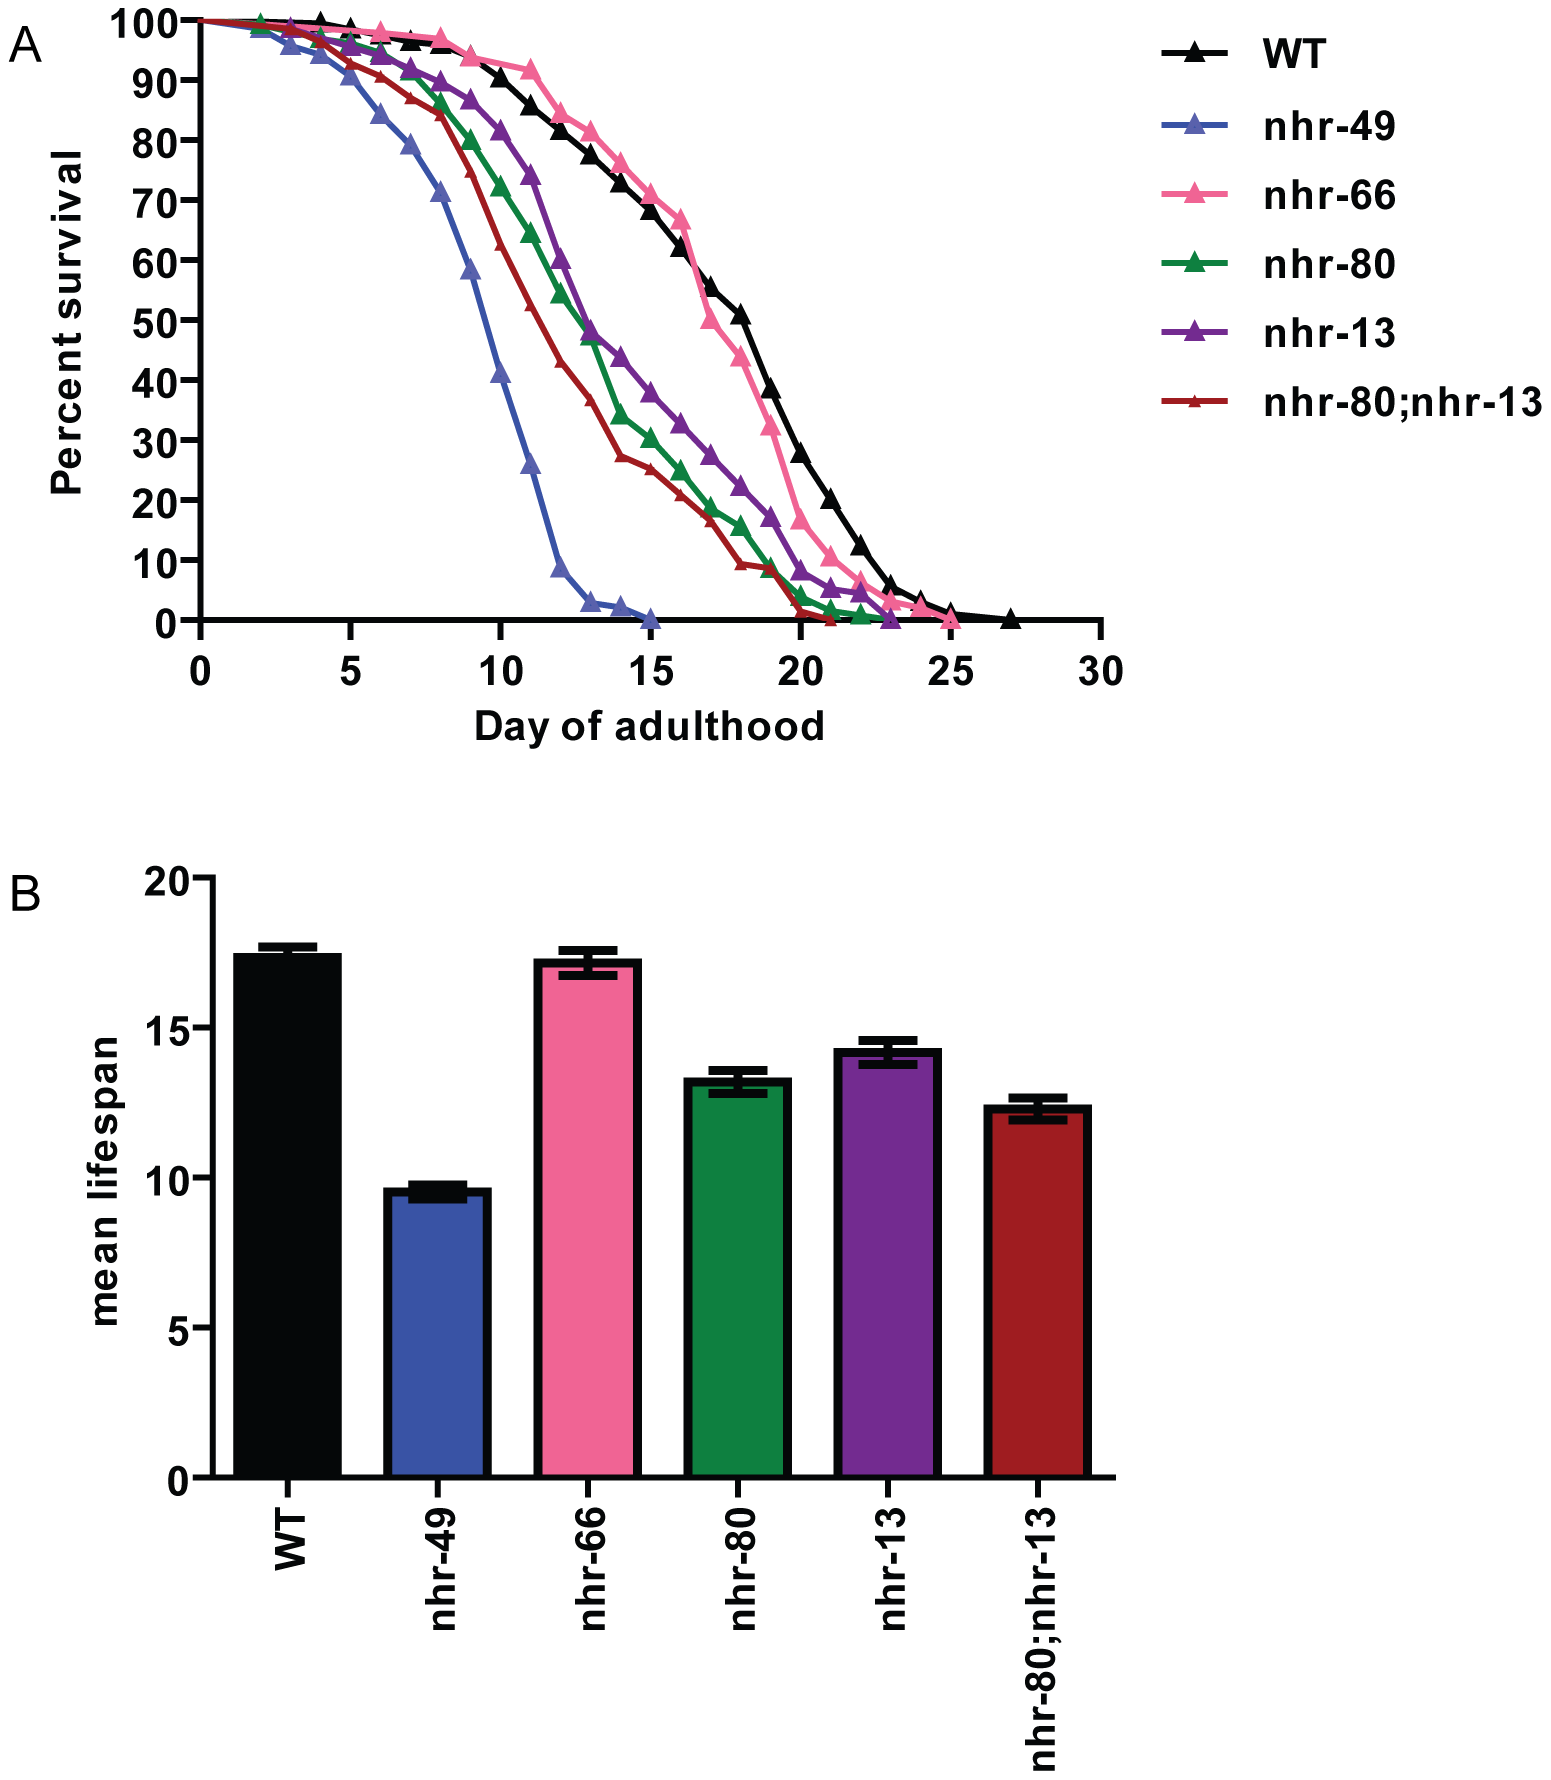 <i>nhr-80; nhr-13</i> double mutants have a reduced lifespan comparable to that of <i>nhr-49</i> animals.